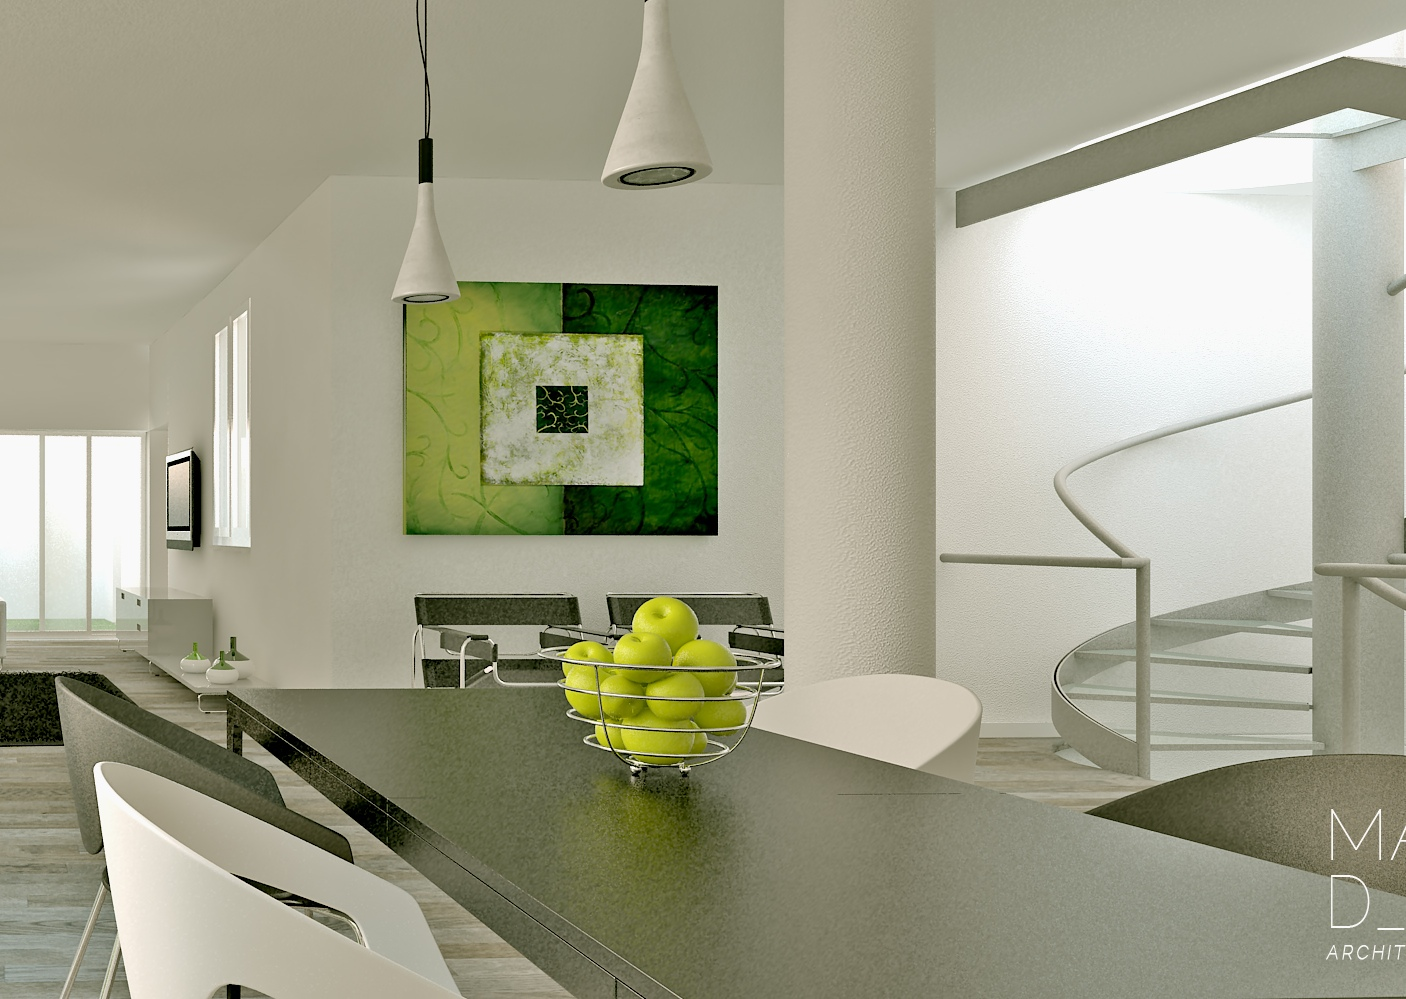 Green white gray dining room interior design ideas for Contemporary interior design ideas